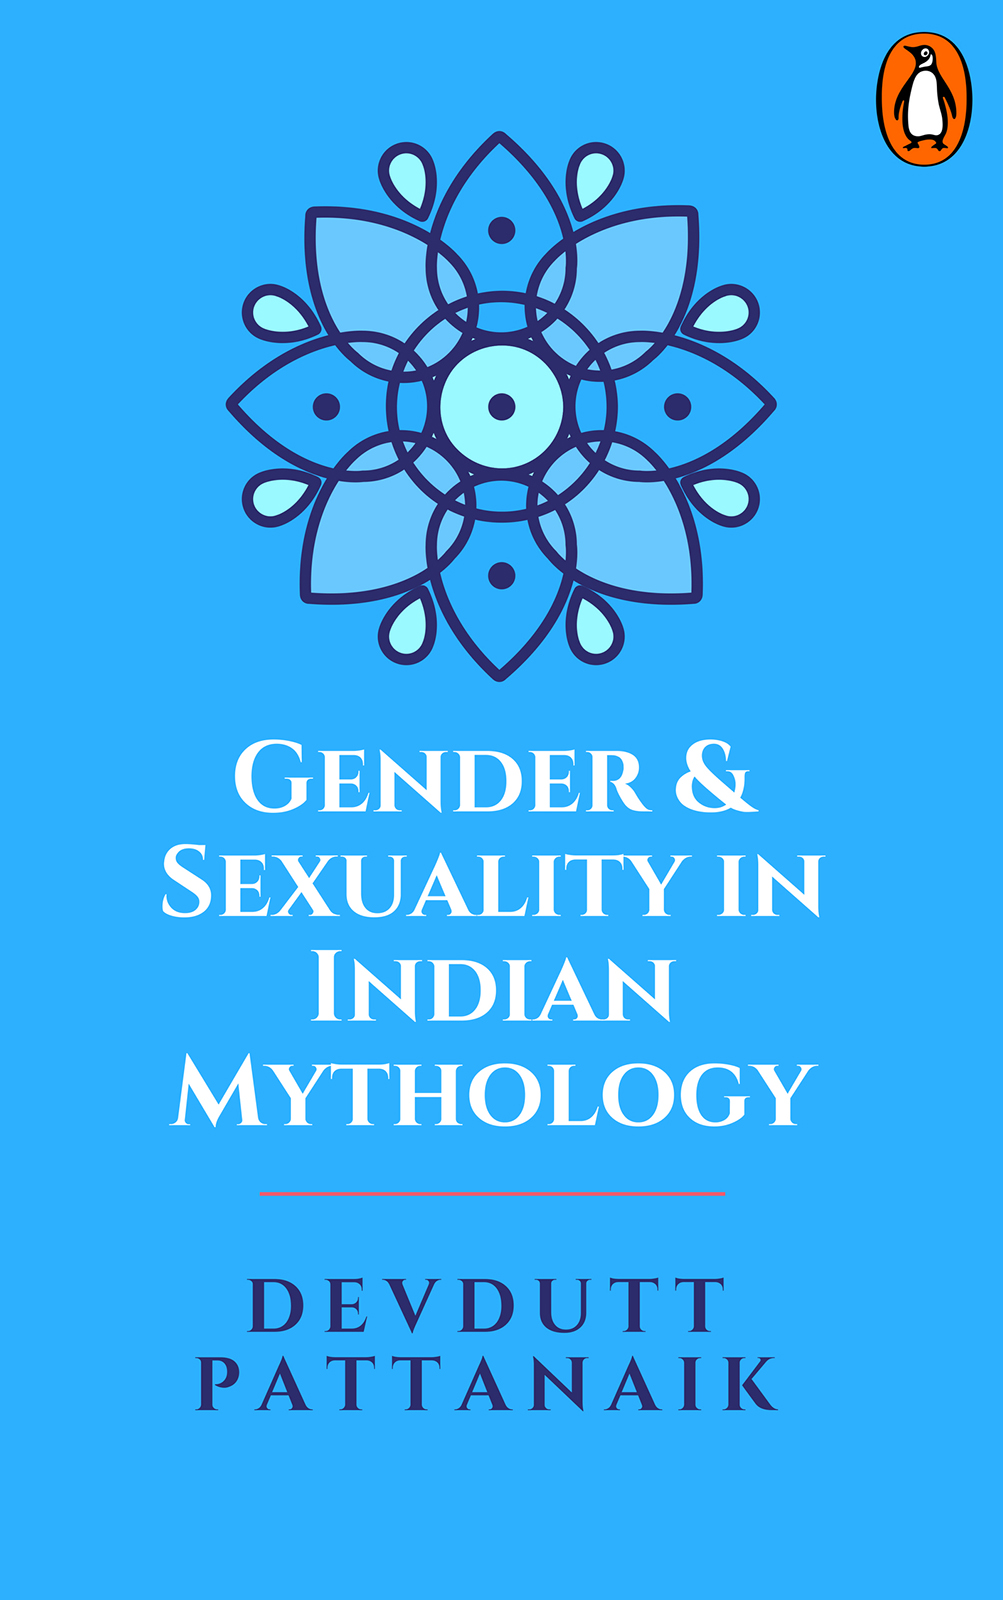 Gender & Sexuality in Indian Mythology